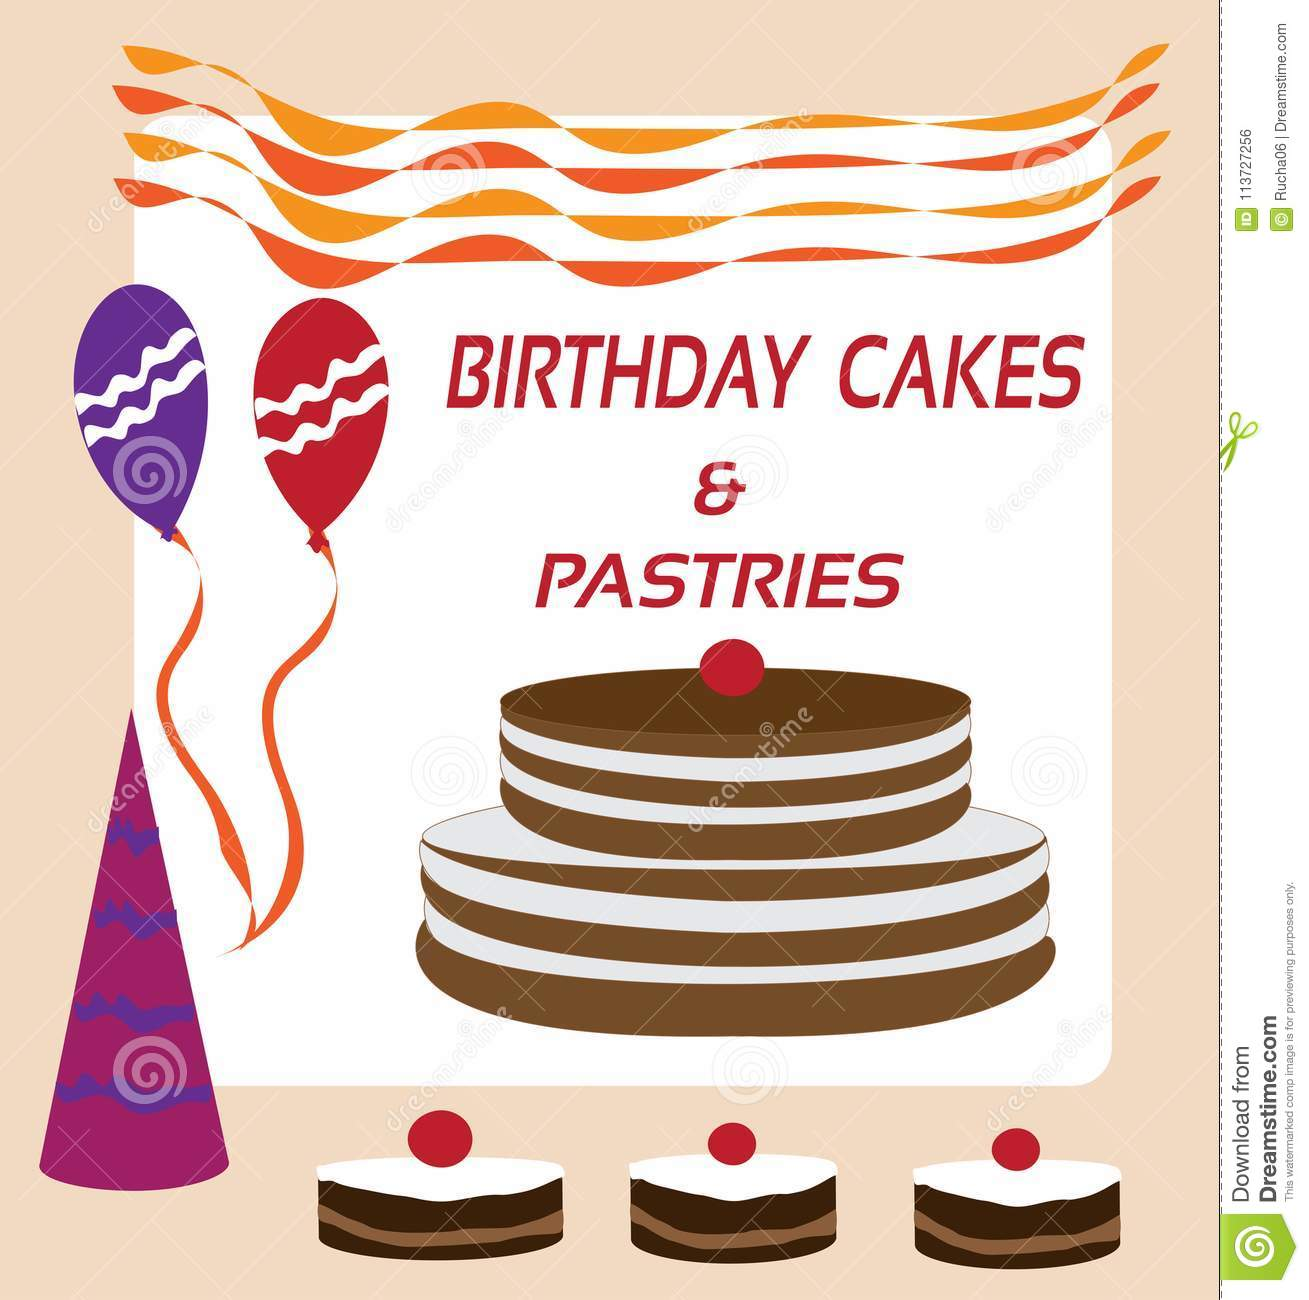 Tremendous Birthday Cakes Pastries For Sale Stock Vector Illustration Of Birthday Cards Printable Opercafe Filternl